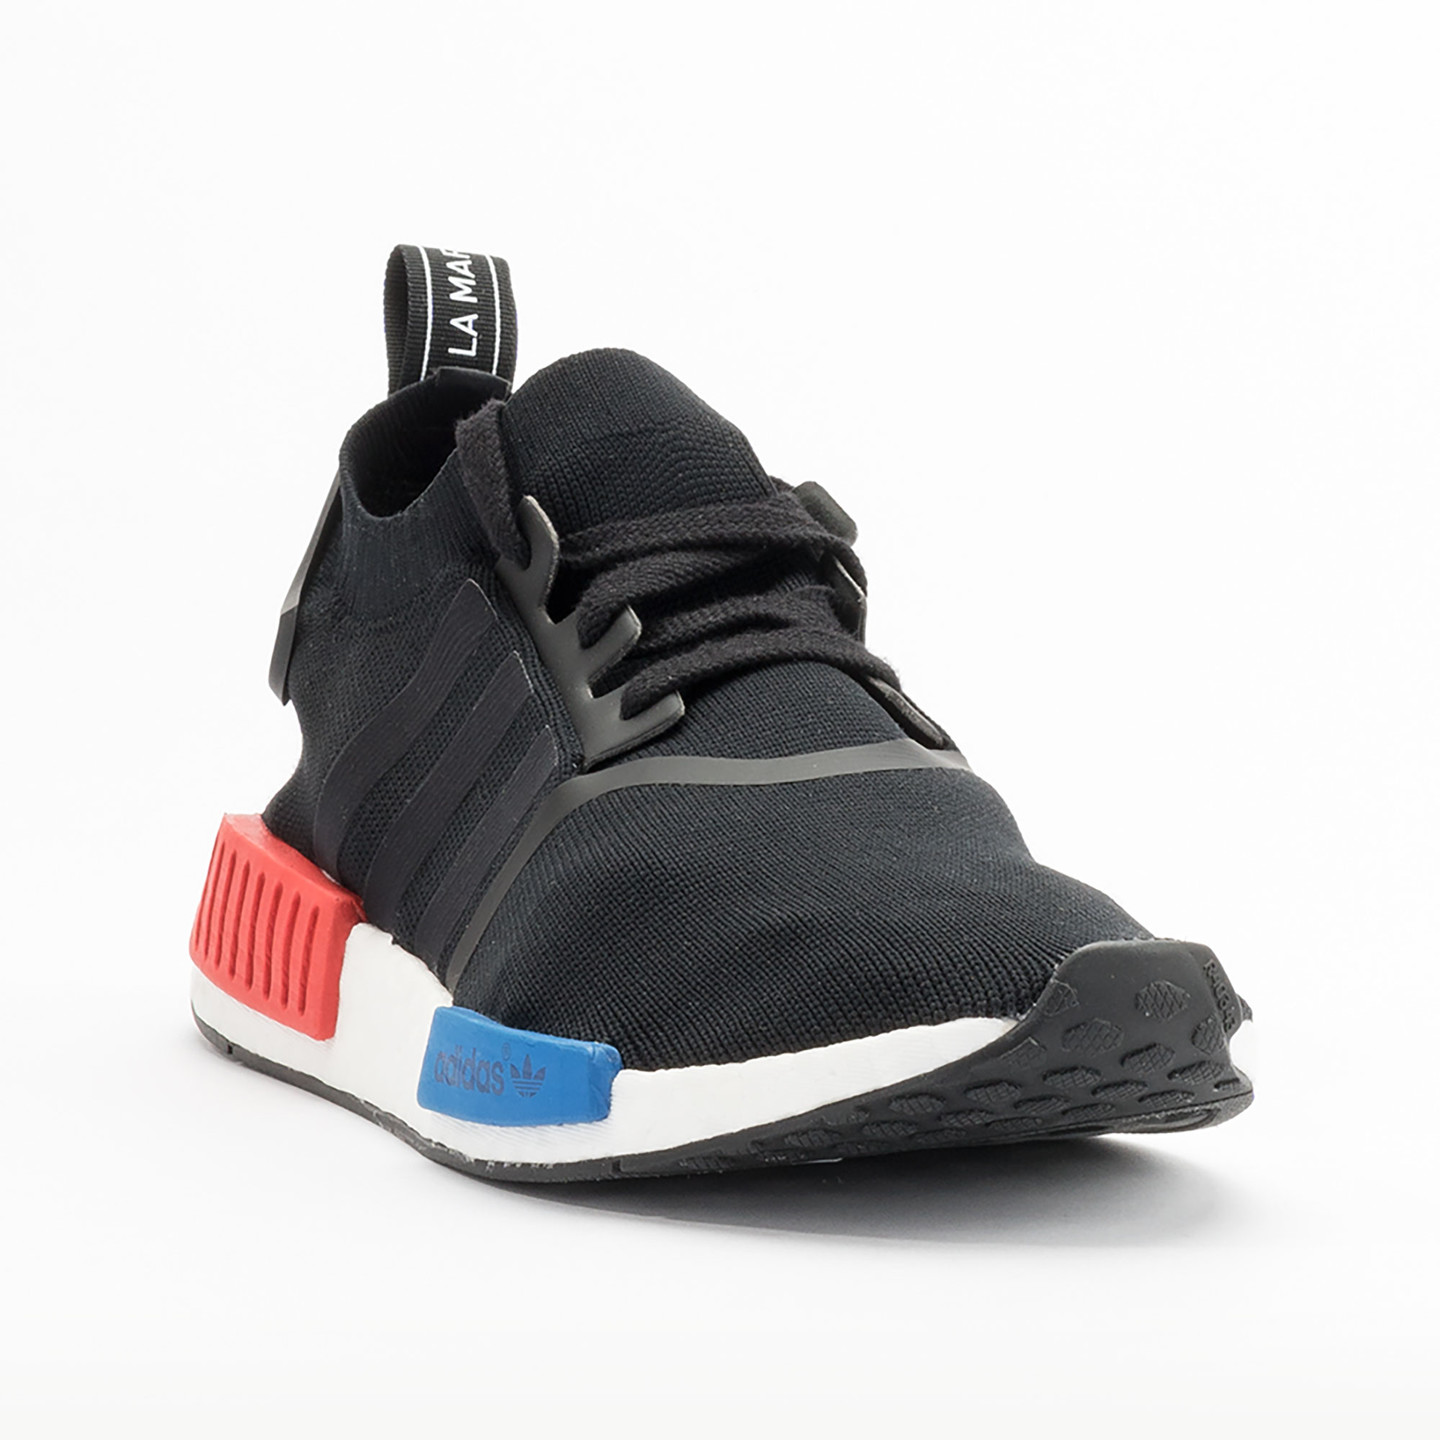 Adidas NMD Runner PK Primeknit Black / Red / Blue / White S79168